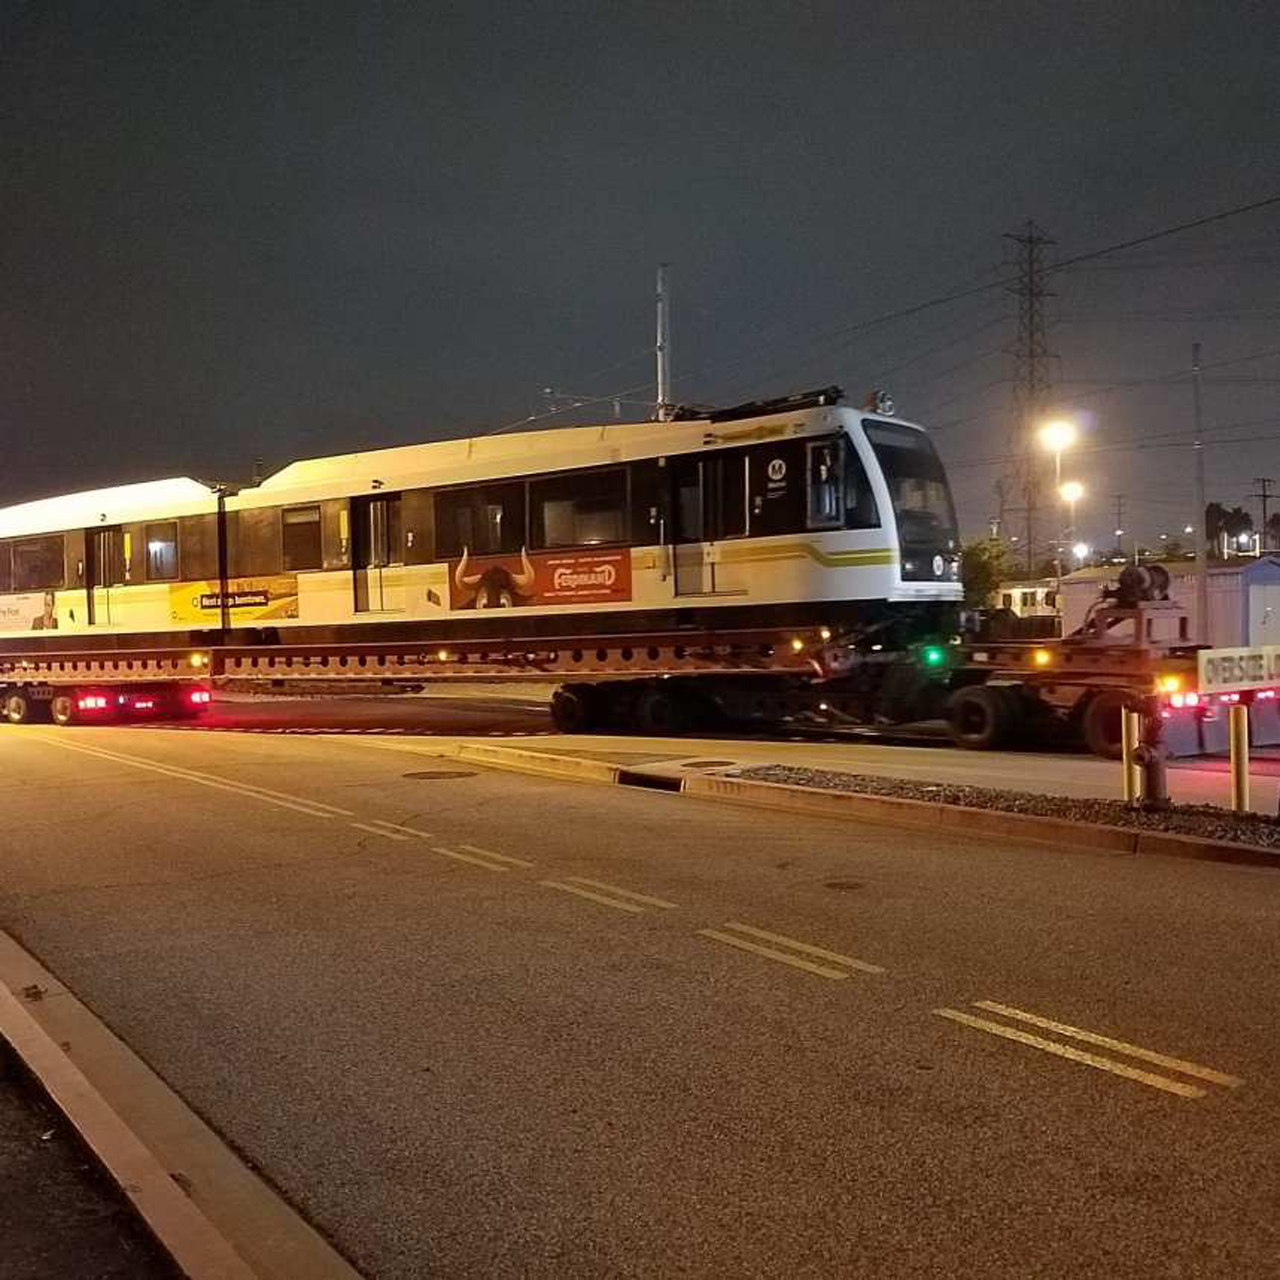 As Metro takes delivery of the next 15 overhauled LRVs—at one per month—they will reenter service along the A (Blue), E (Expo) and C (Green) lines. The contract, awarded in 2017, calls for 52 cars to undergo midlife service.